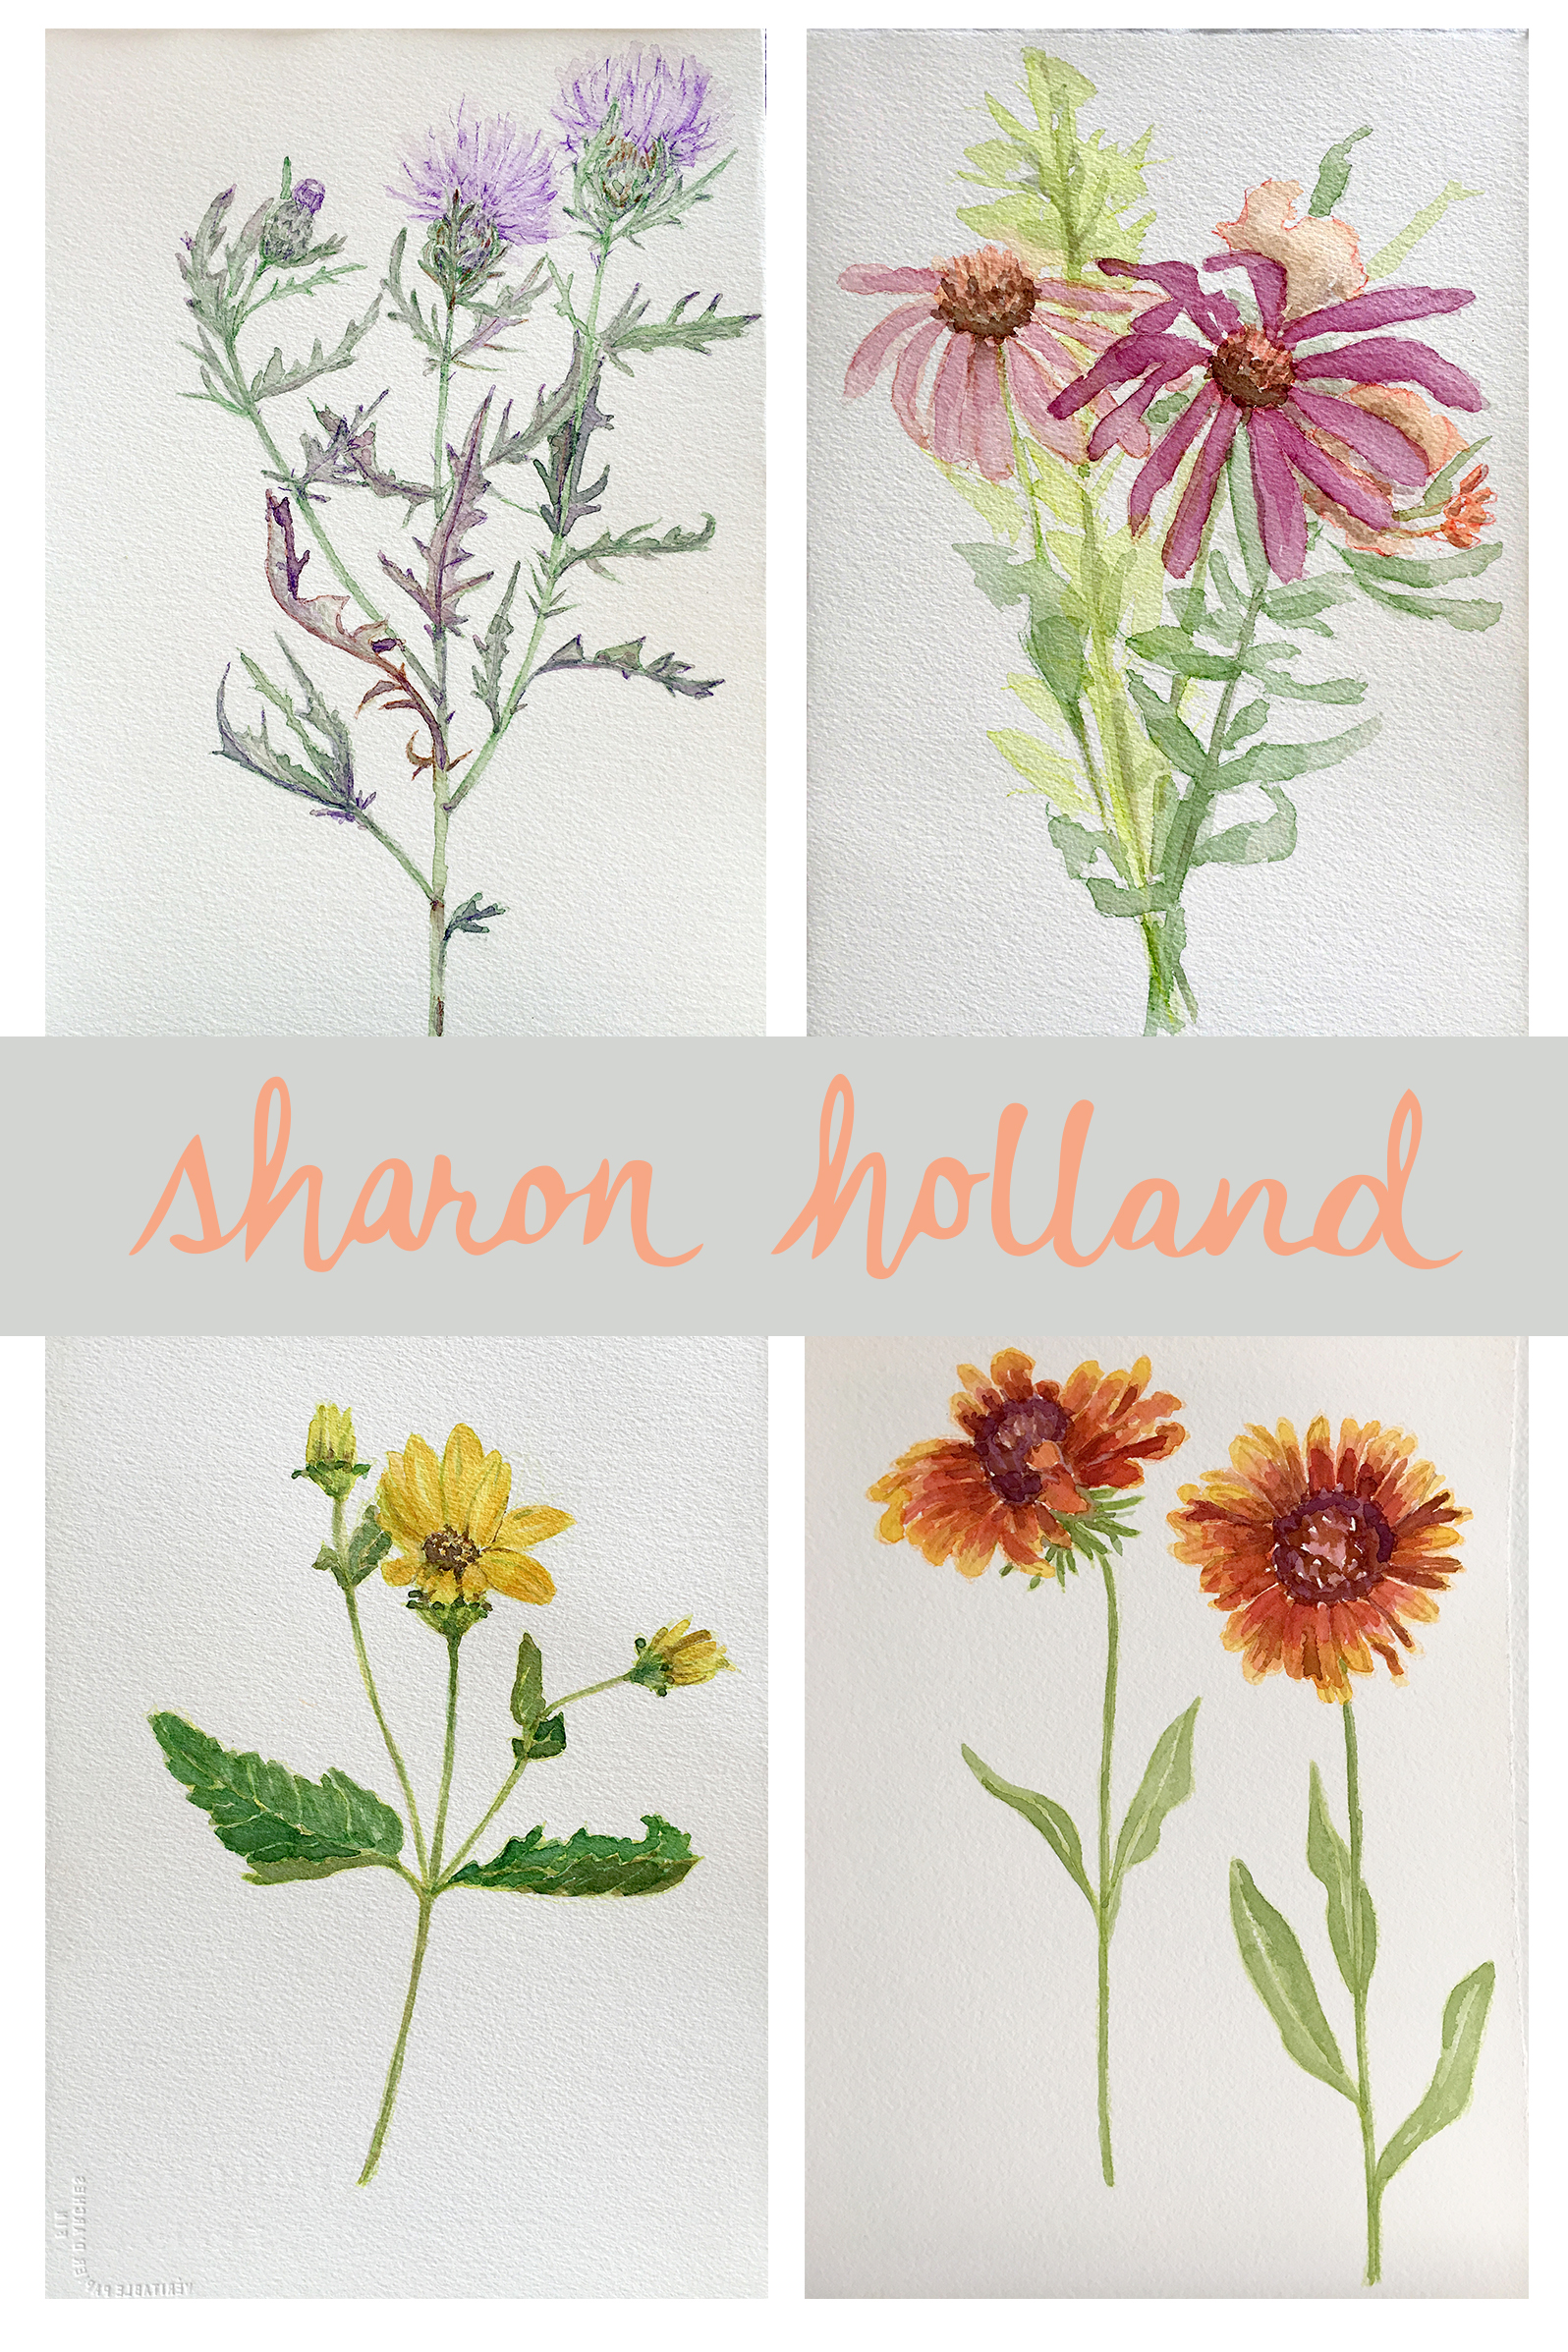 Sharon Holland Art